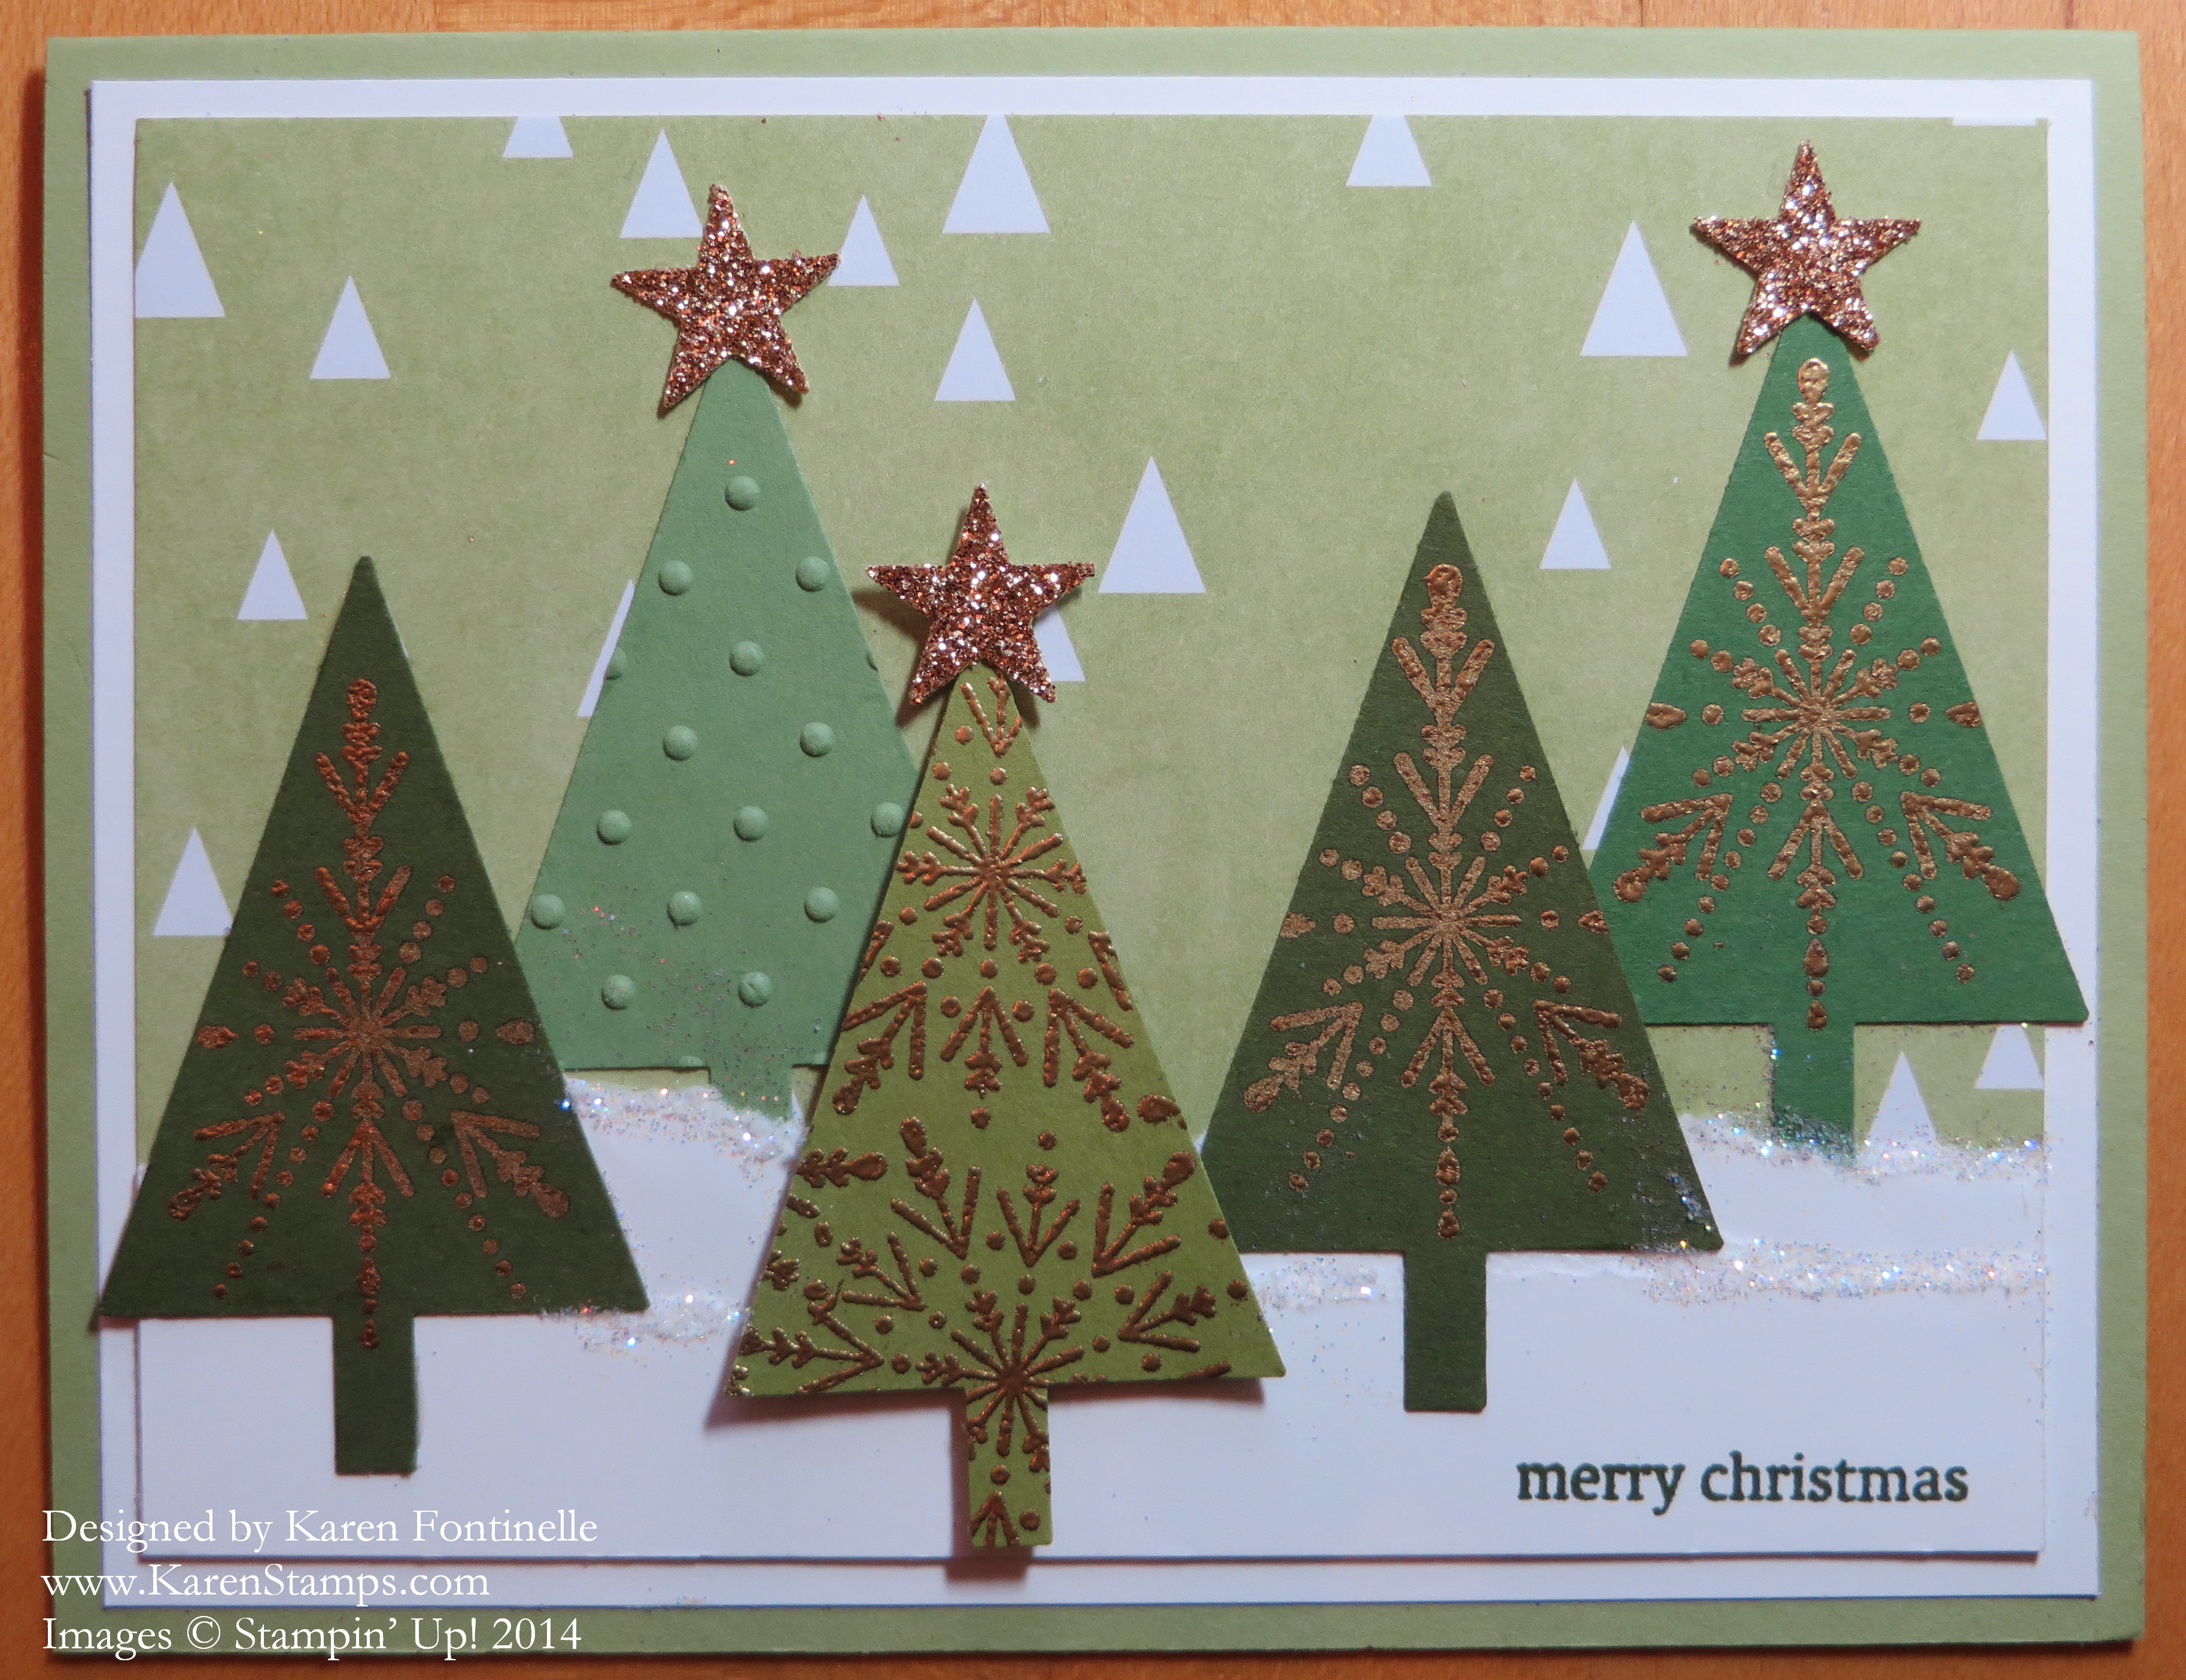 Many Merry Stars Christmas Tree Card